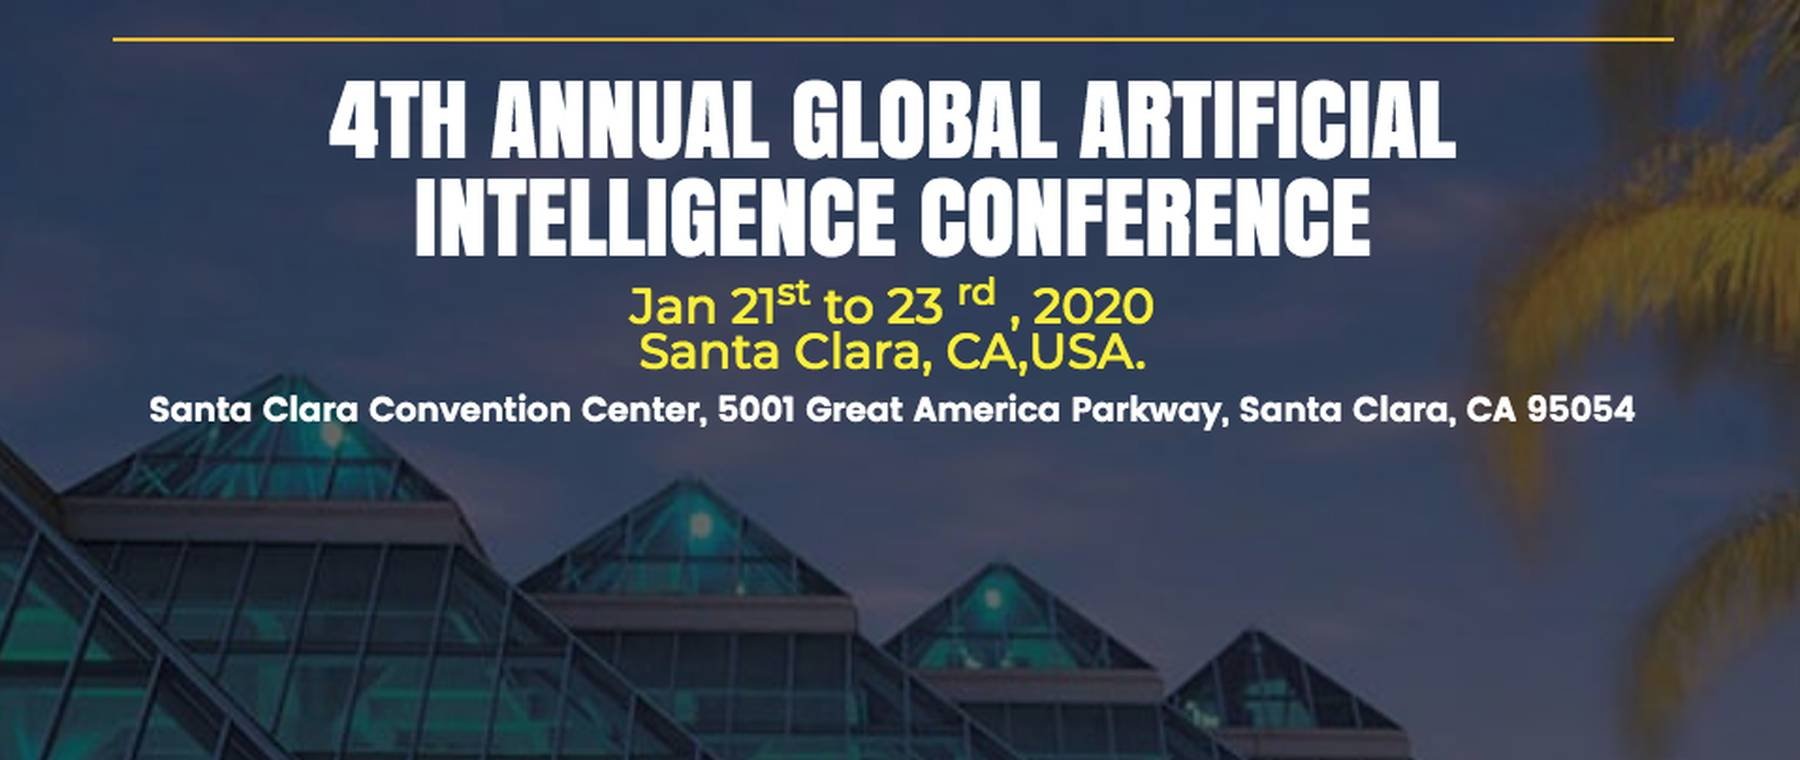 4th Annual Global Artificial Intelligence Conference Santa Clara 2020